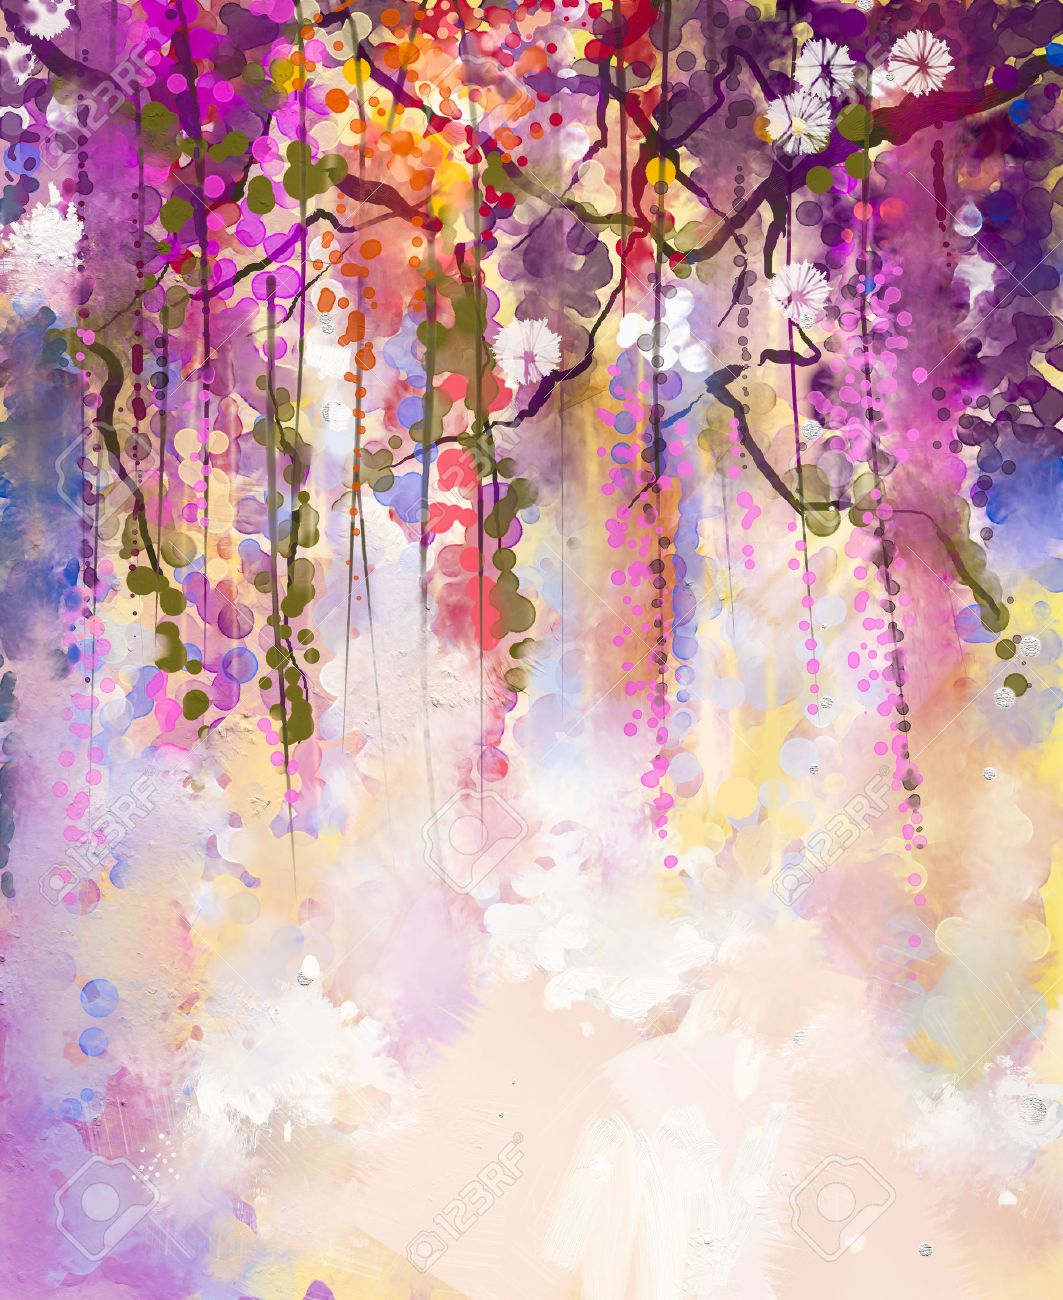 Abstract Flowers Watercolor Painting Spring Purple Flowers Wisteria